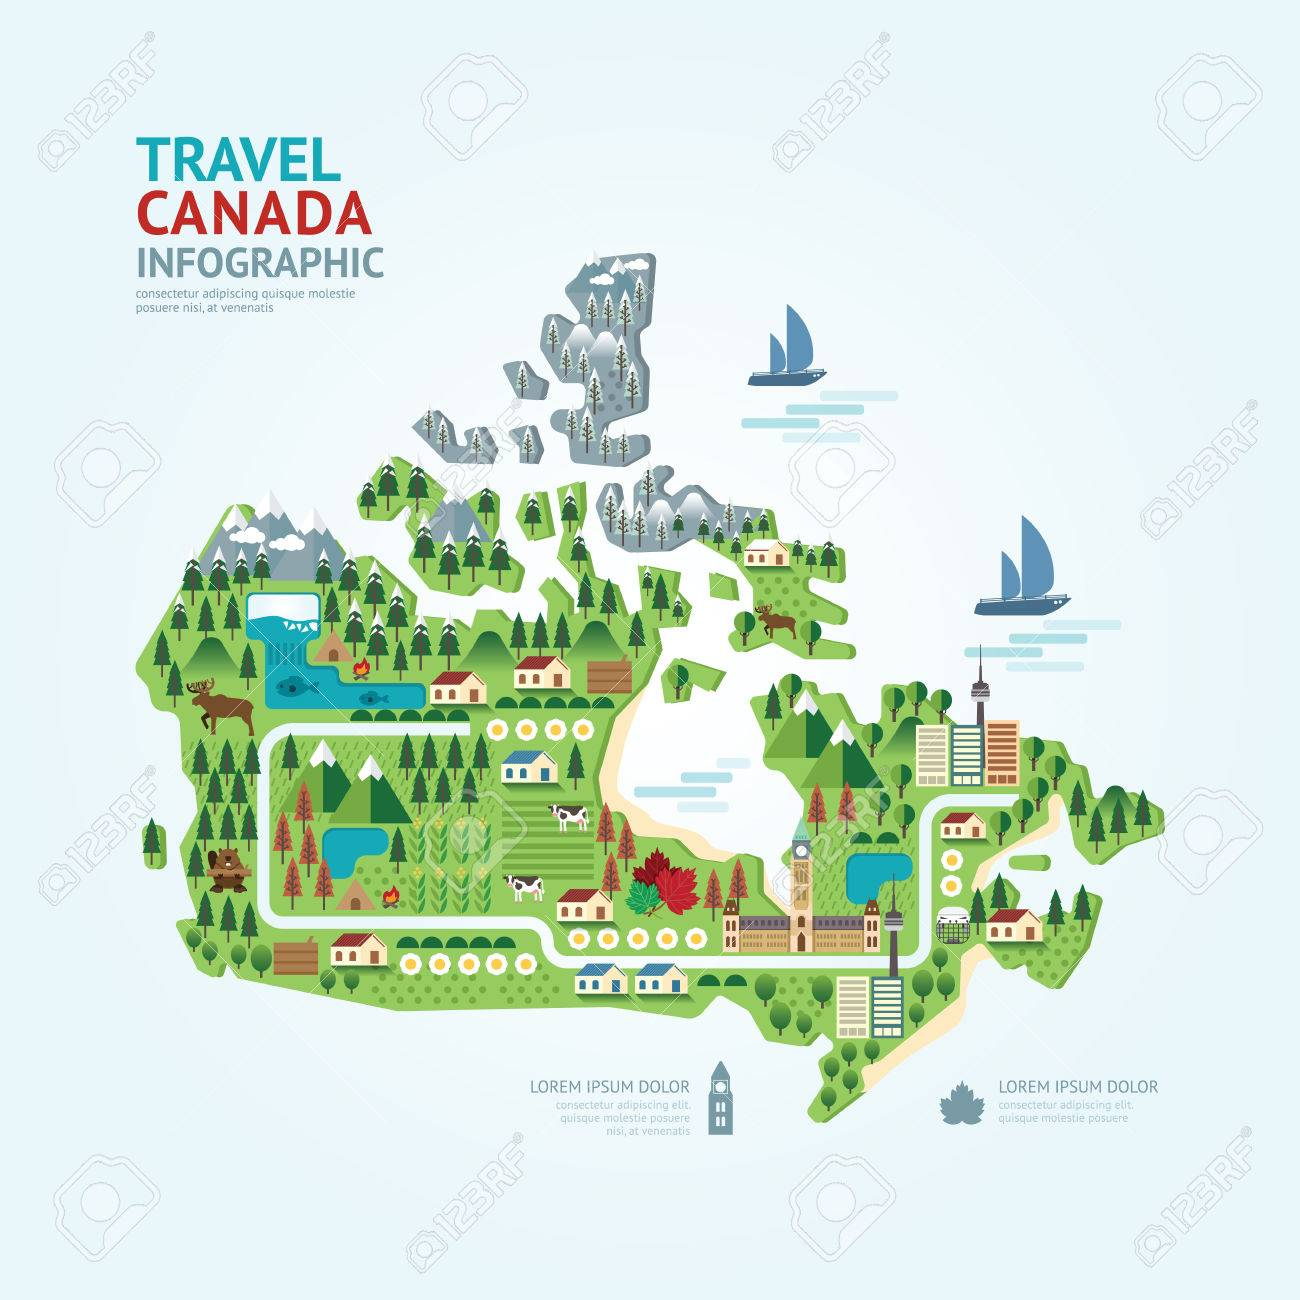 Travel Map Of Canada.Infographic Travel And Landmark Canada Map Shape Template Design